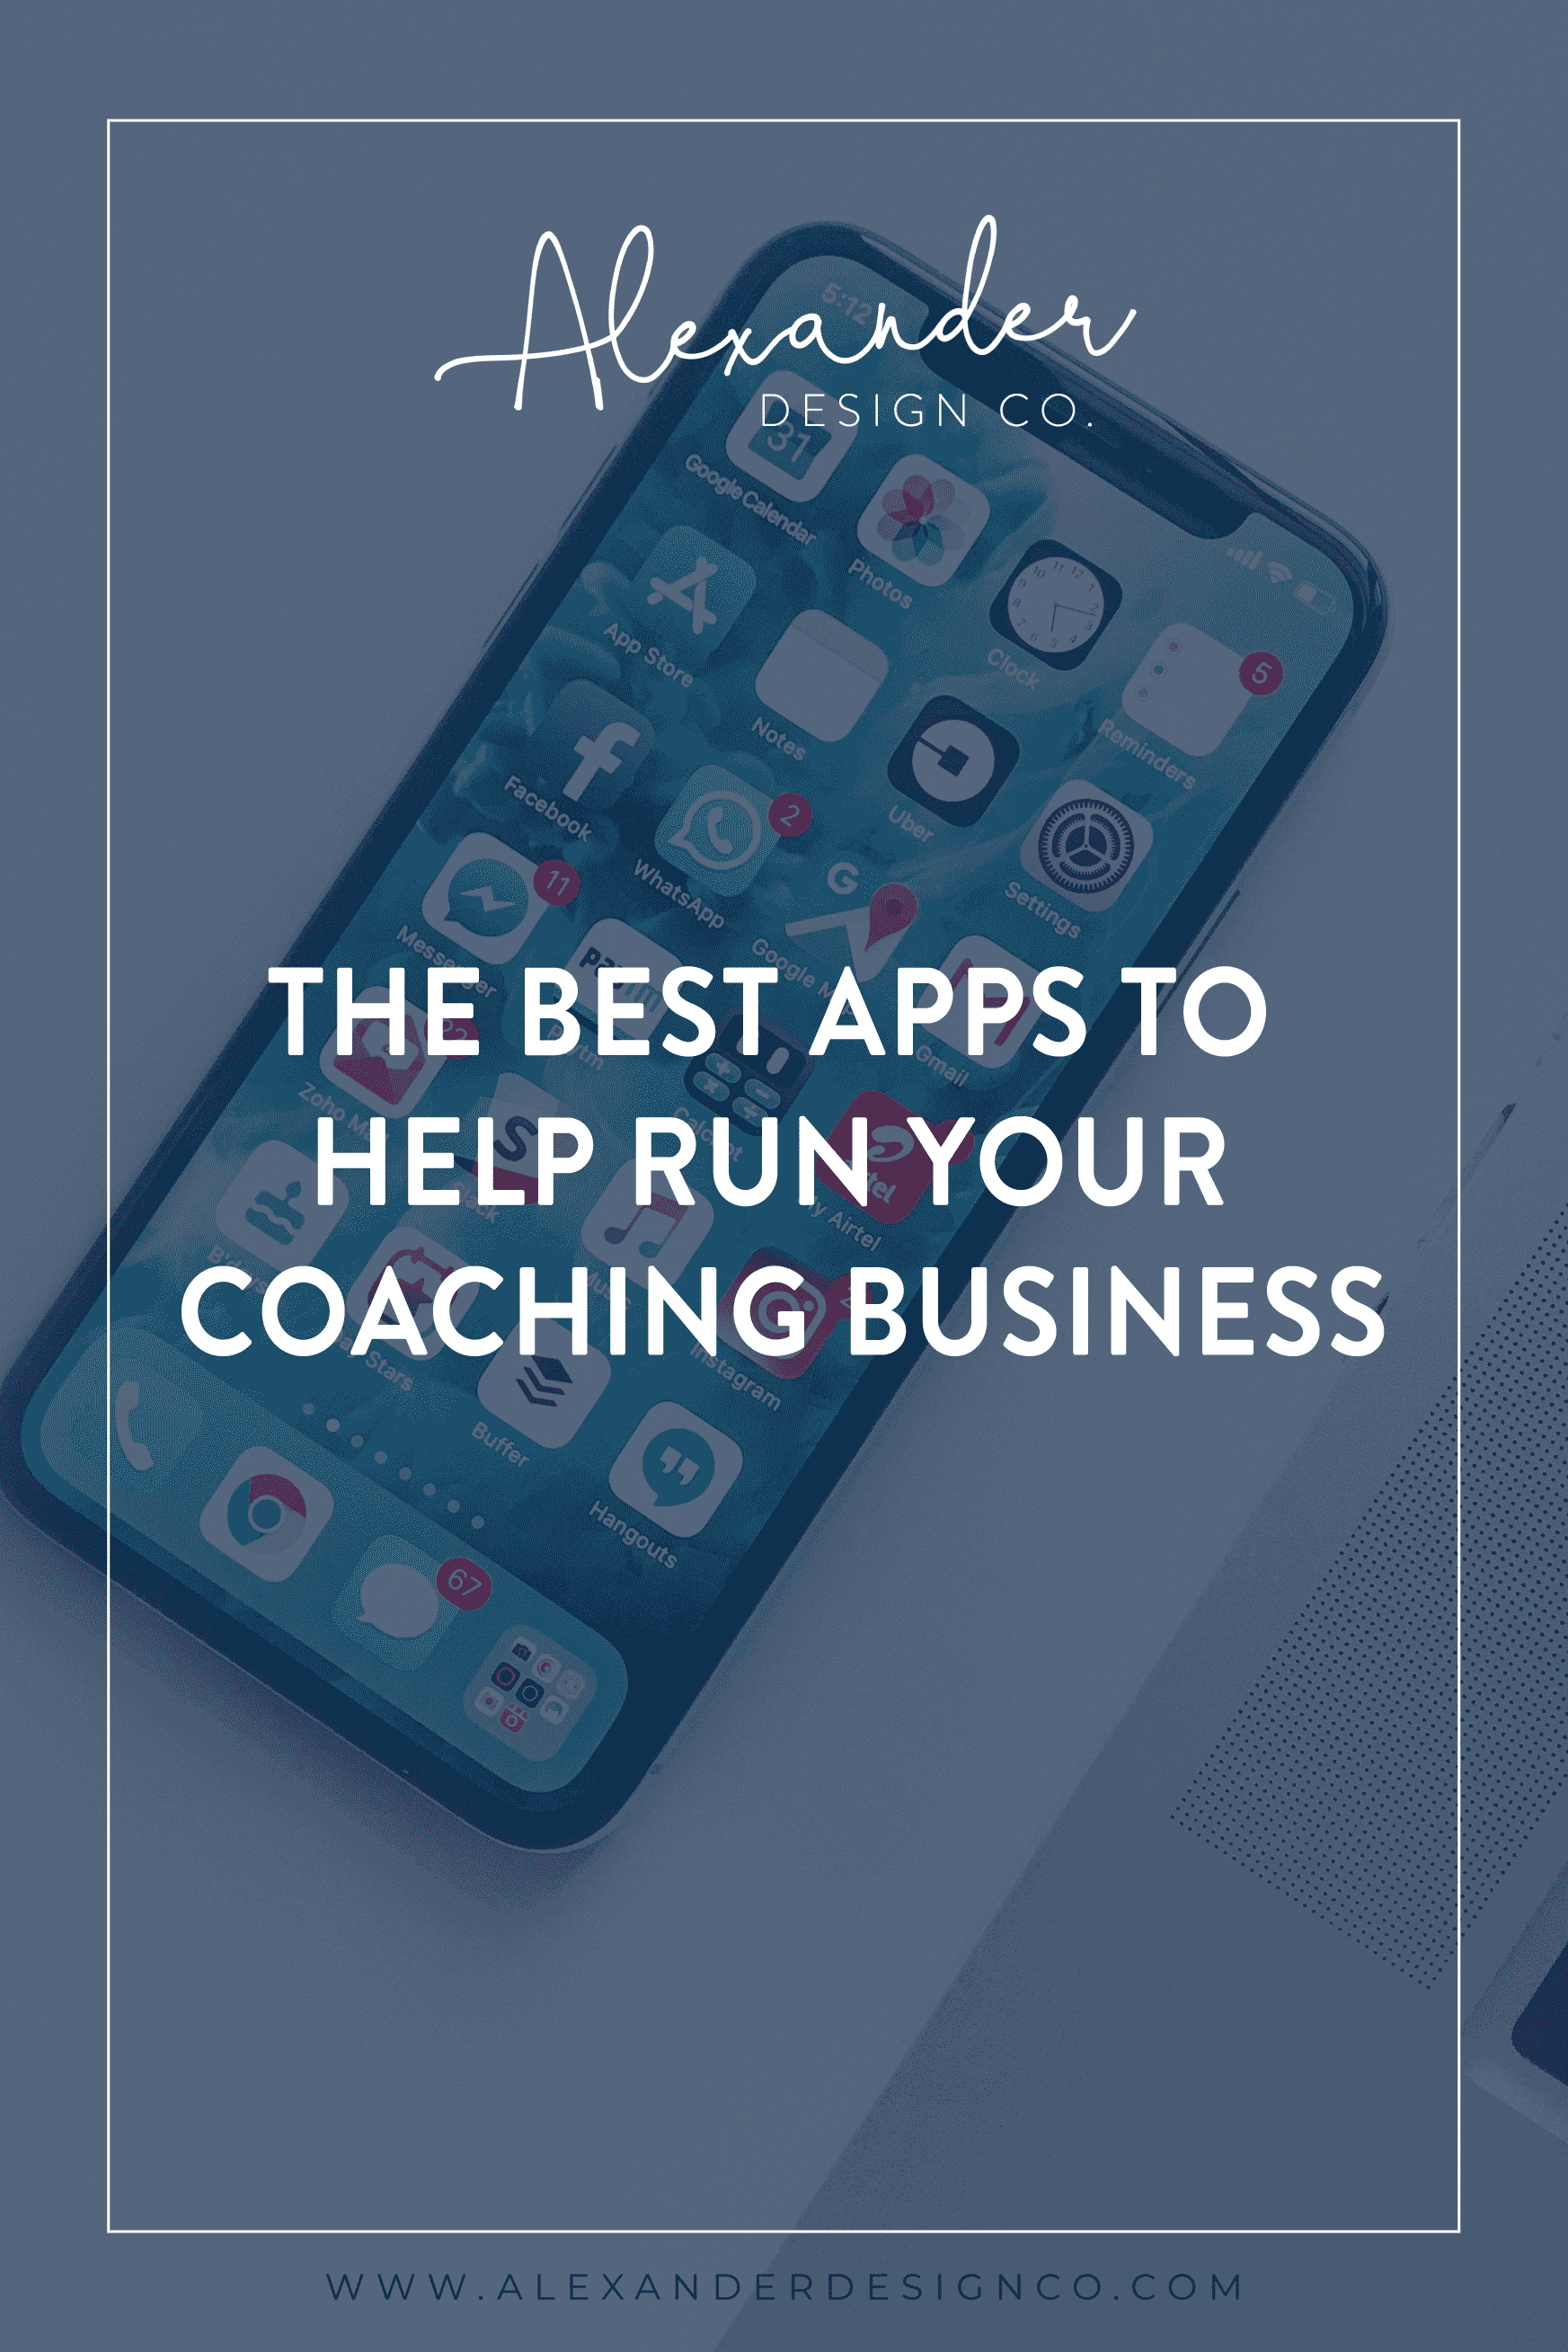 The Best Apps to Help Run Your Coaching Business